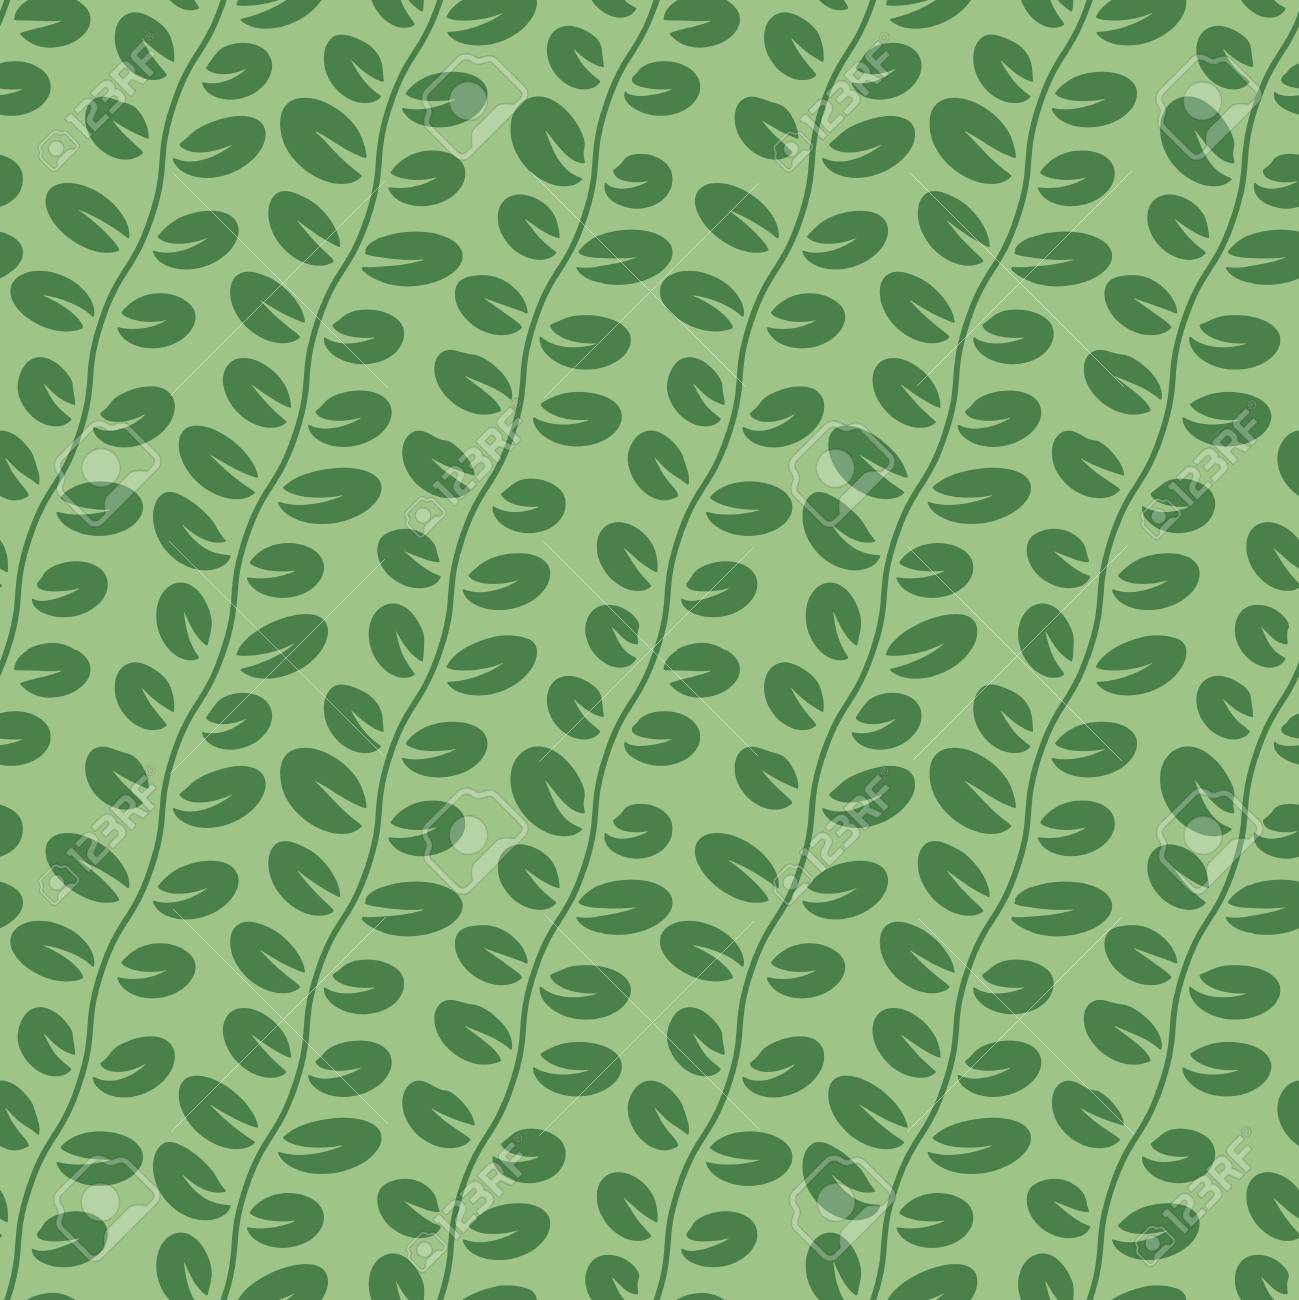 Vector Seamless Leaf Pattern with branches on Green Background Stock Vector - 19374226